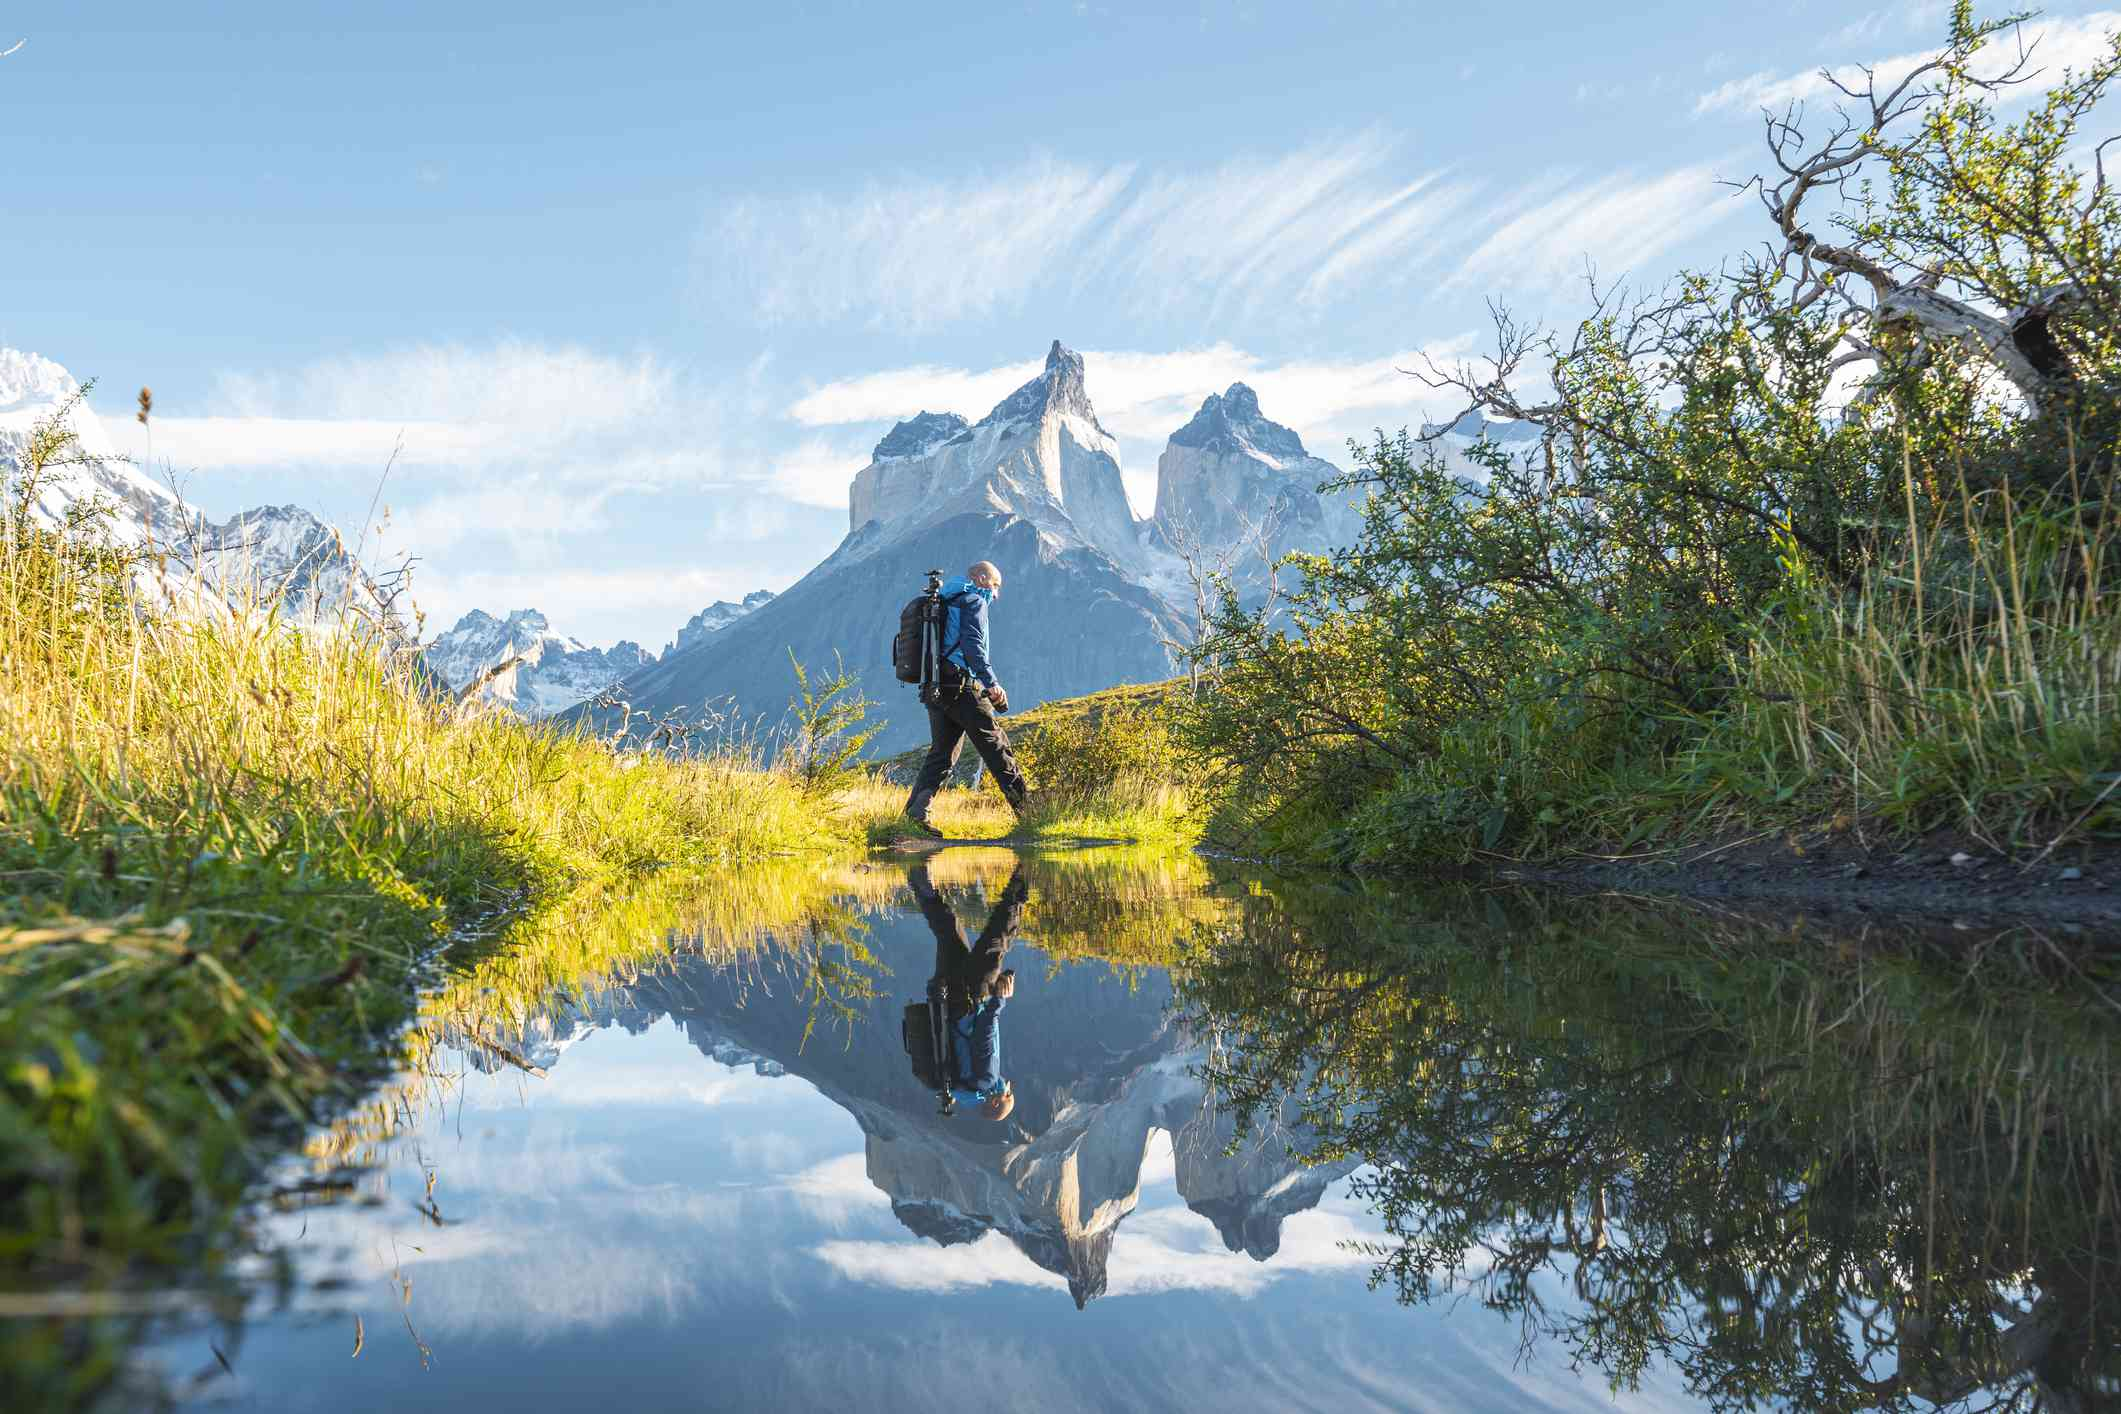 One man crossing a pond in Torres del Paine National Park, Chile